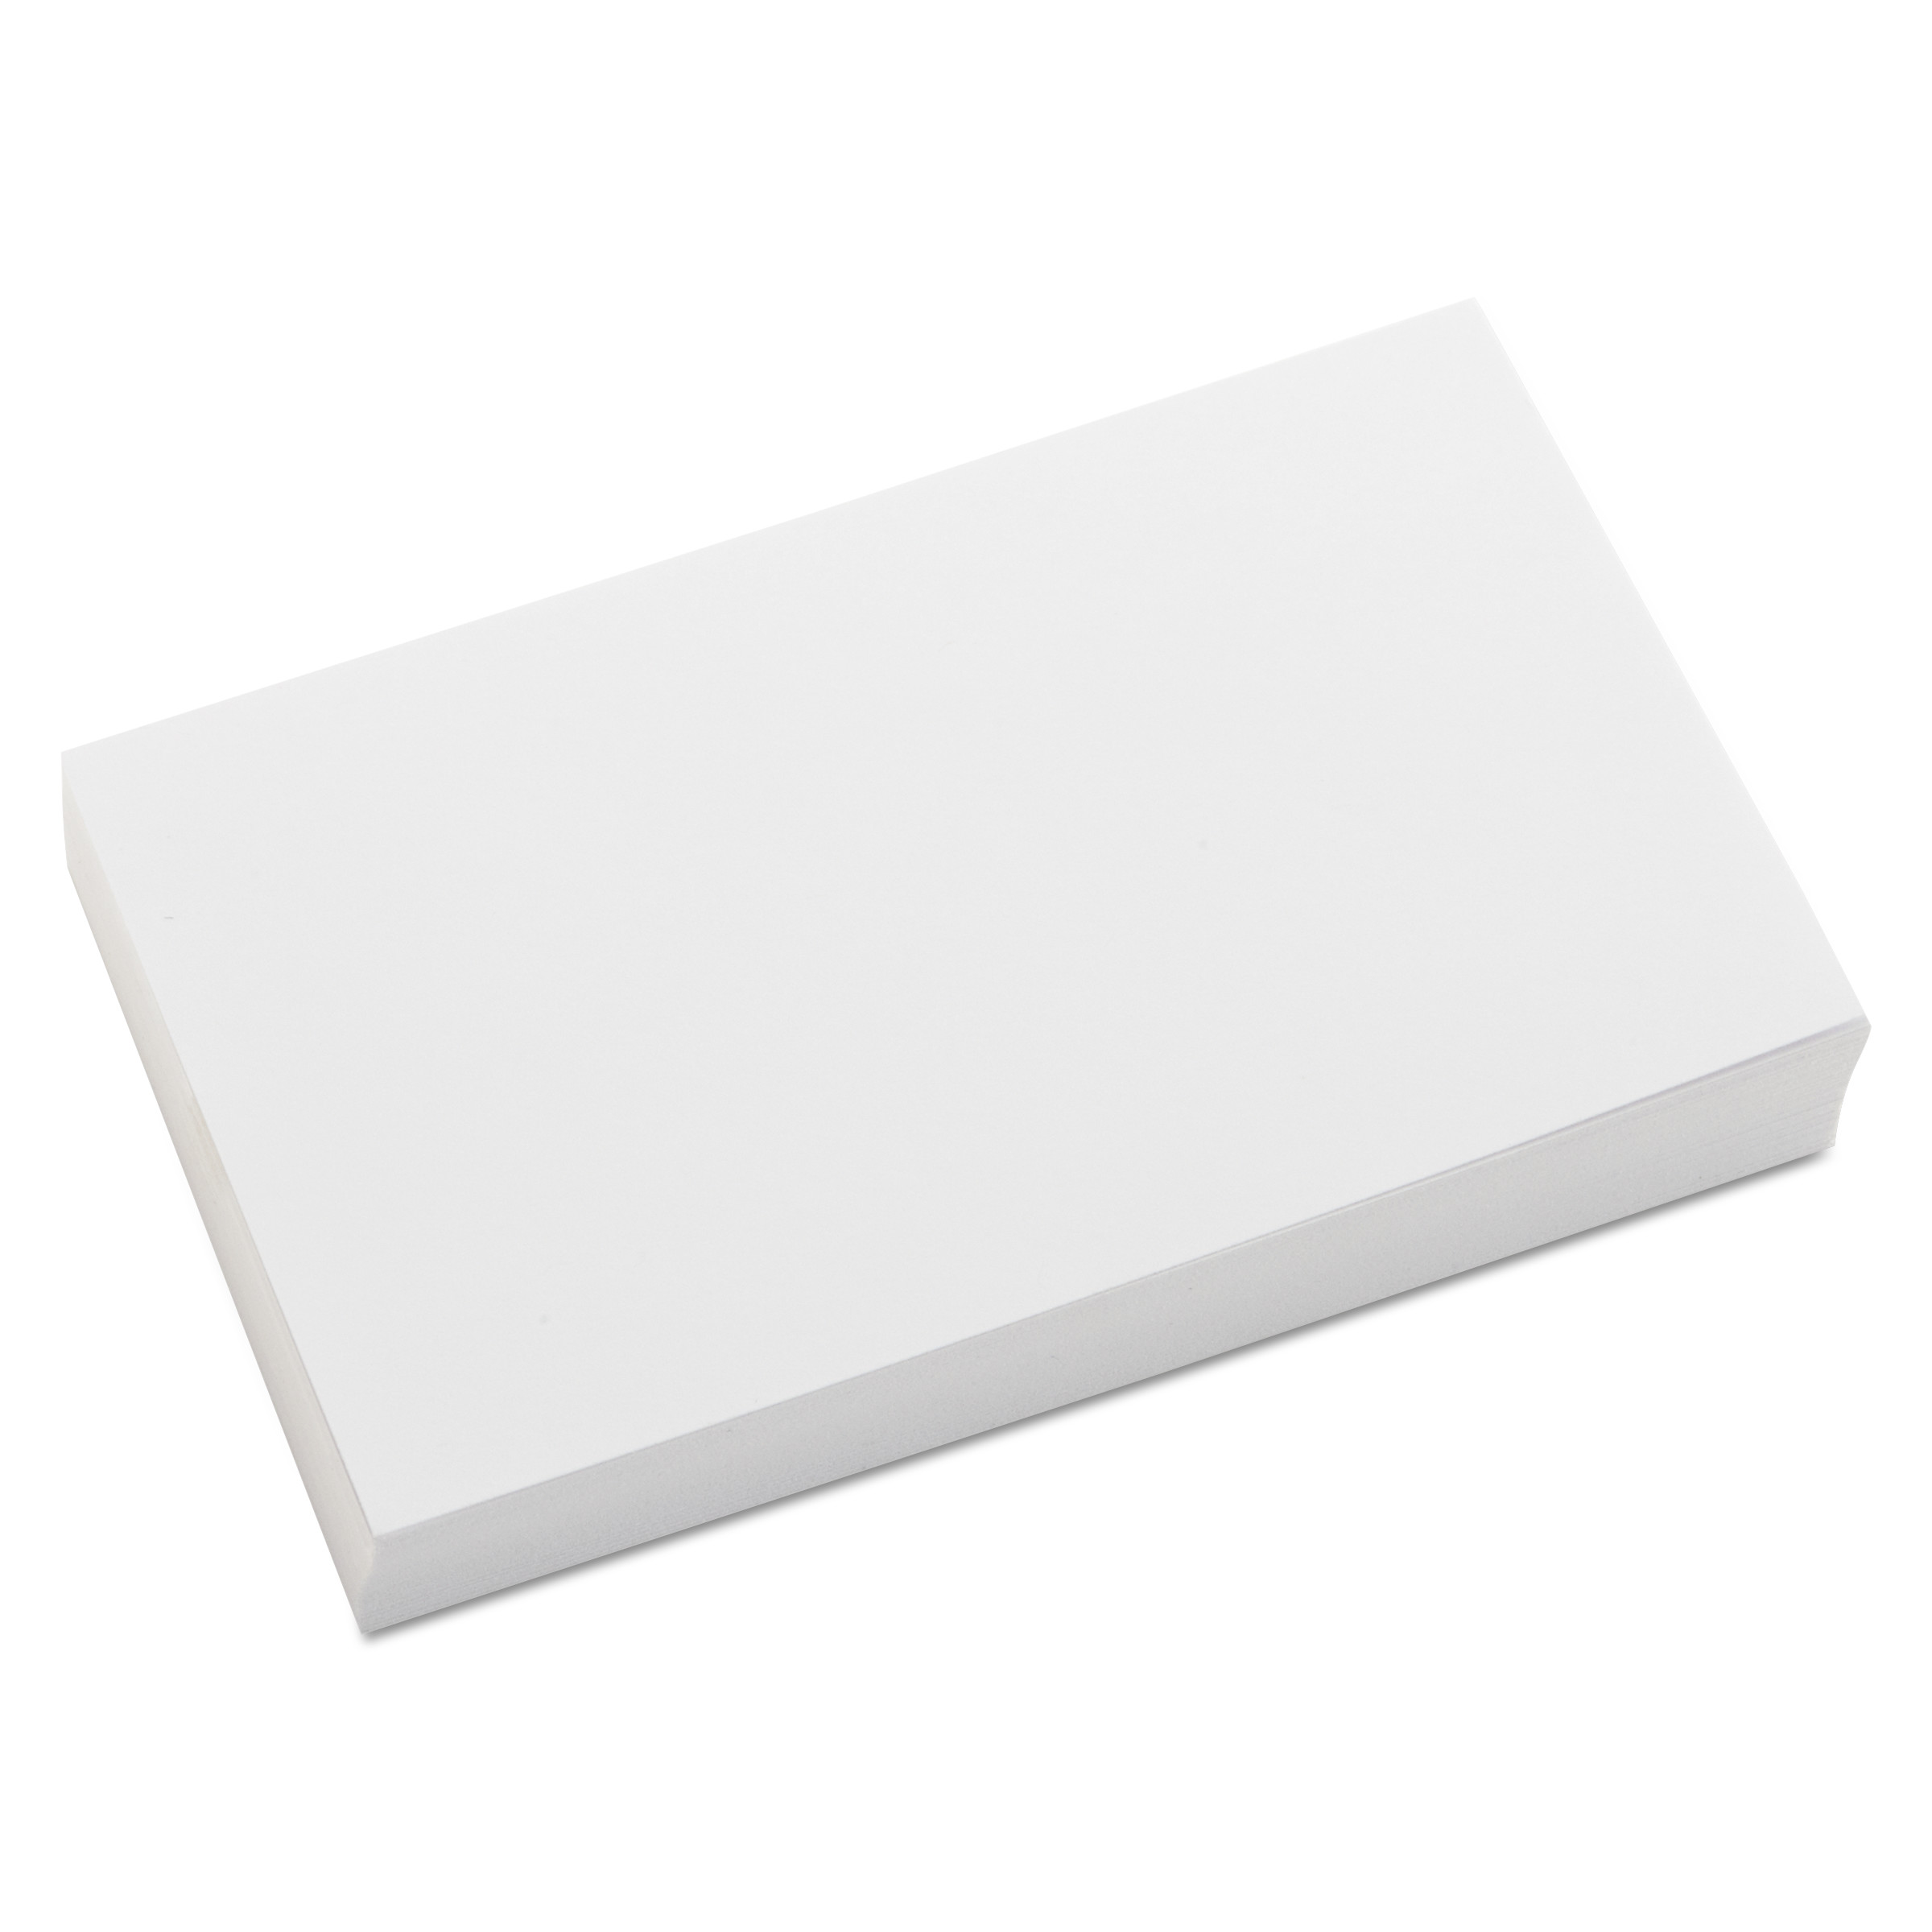 Unruled Index Cards, 3 x 5, White, 100/Pack